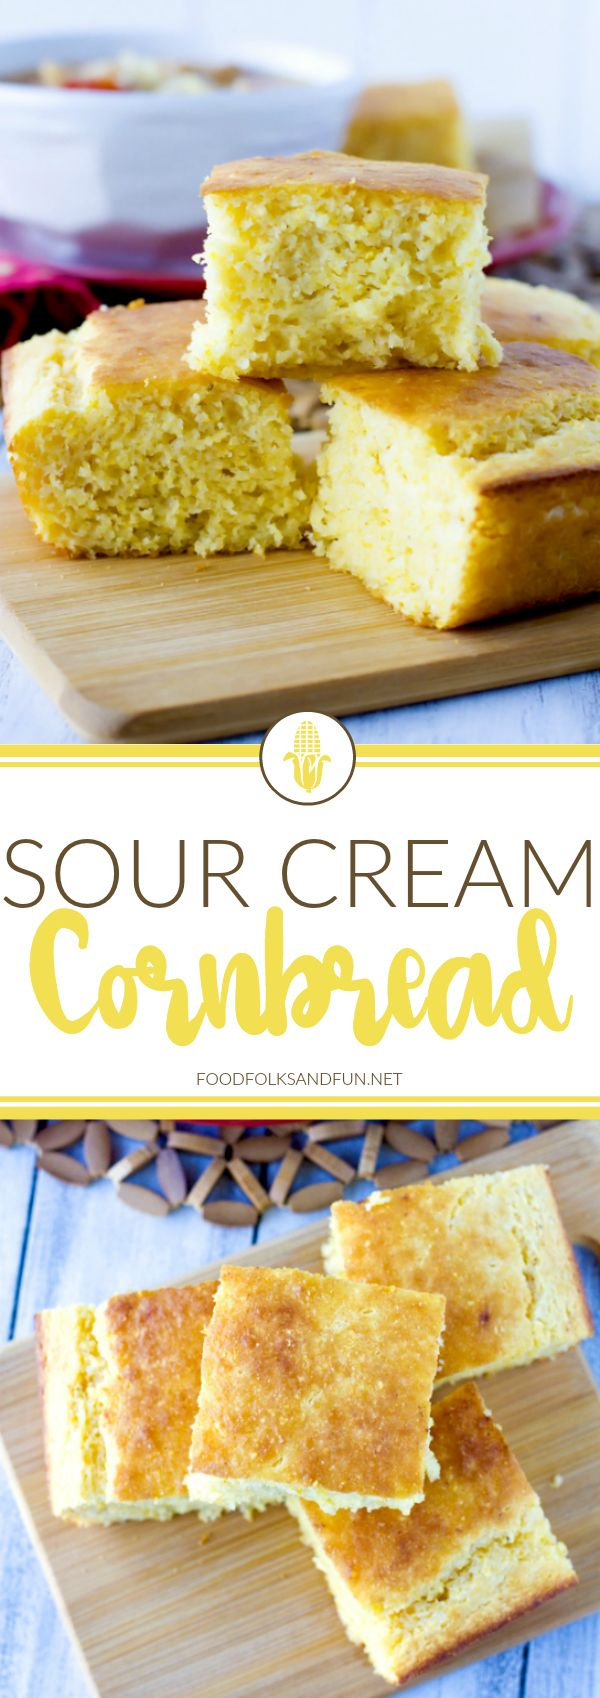 This Sour Cream Cornbread recipe is so moist, delicious, and not overly sweet. It's super easy to make, the entire family will love it, and it's simply the best!